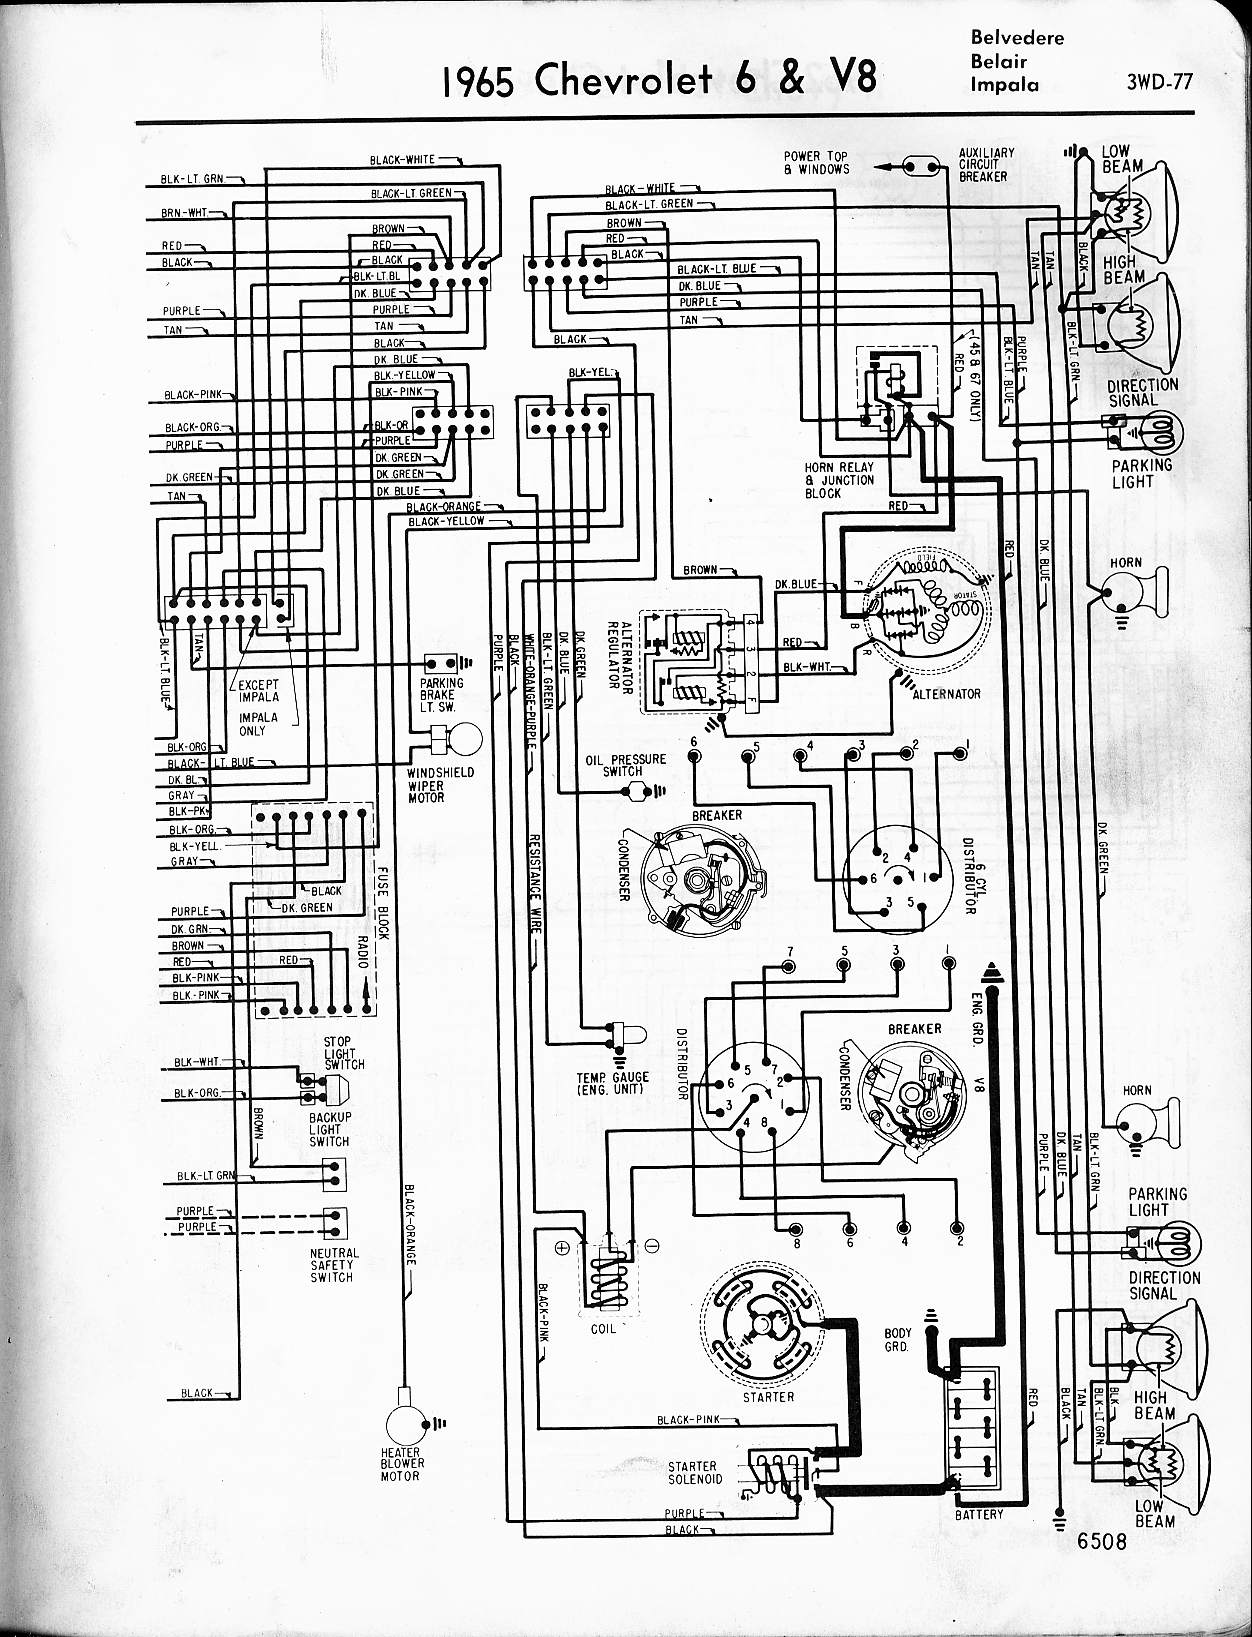 1965 Chevrolet Wiring Diagram Data 1957 Chevy Headlight 57 65 Diagrams Schematic 6 V8 Biscayne Bel